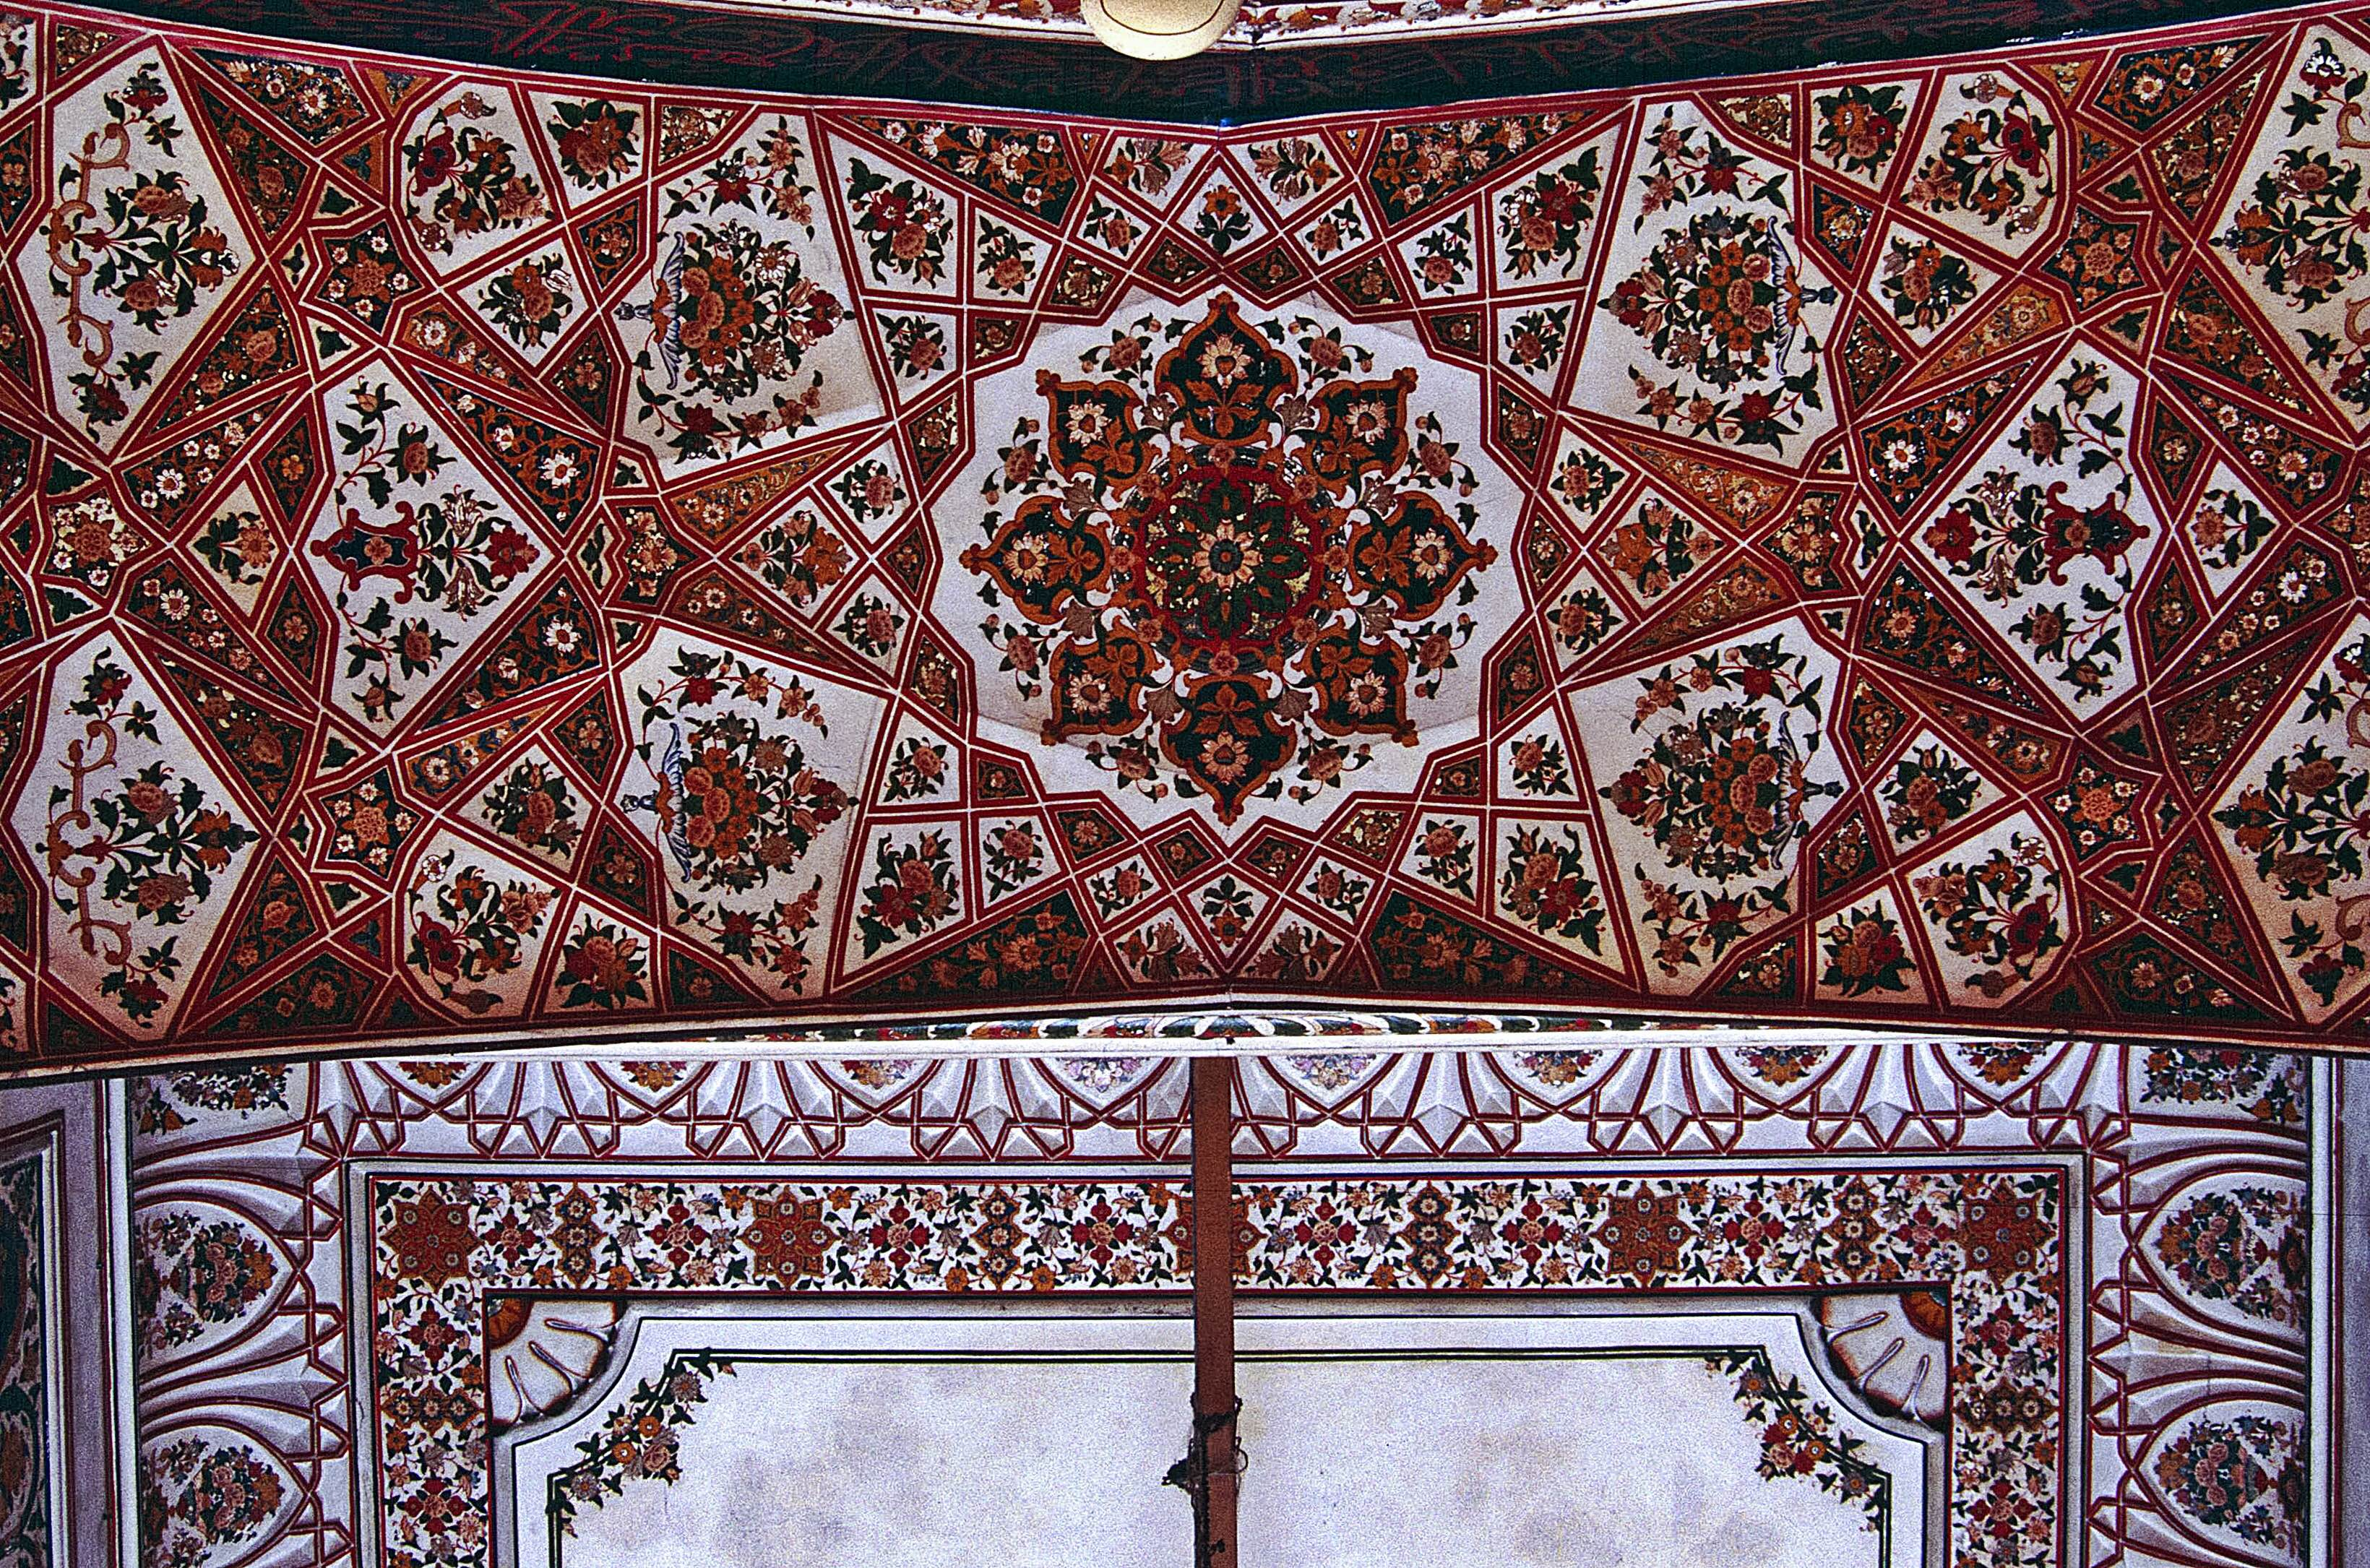 Example of A Beautiful Peshawar art Motif from the Mugal Age